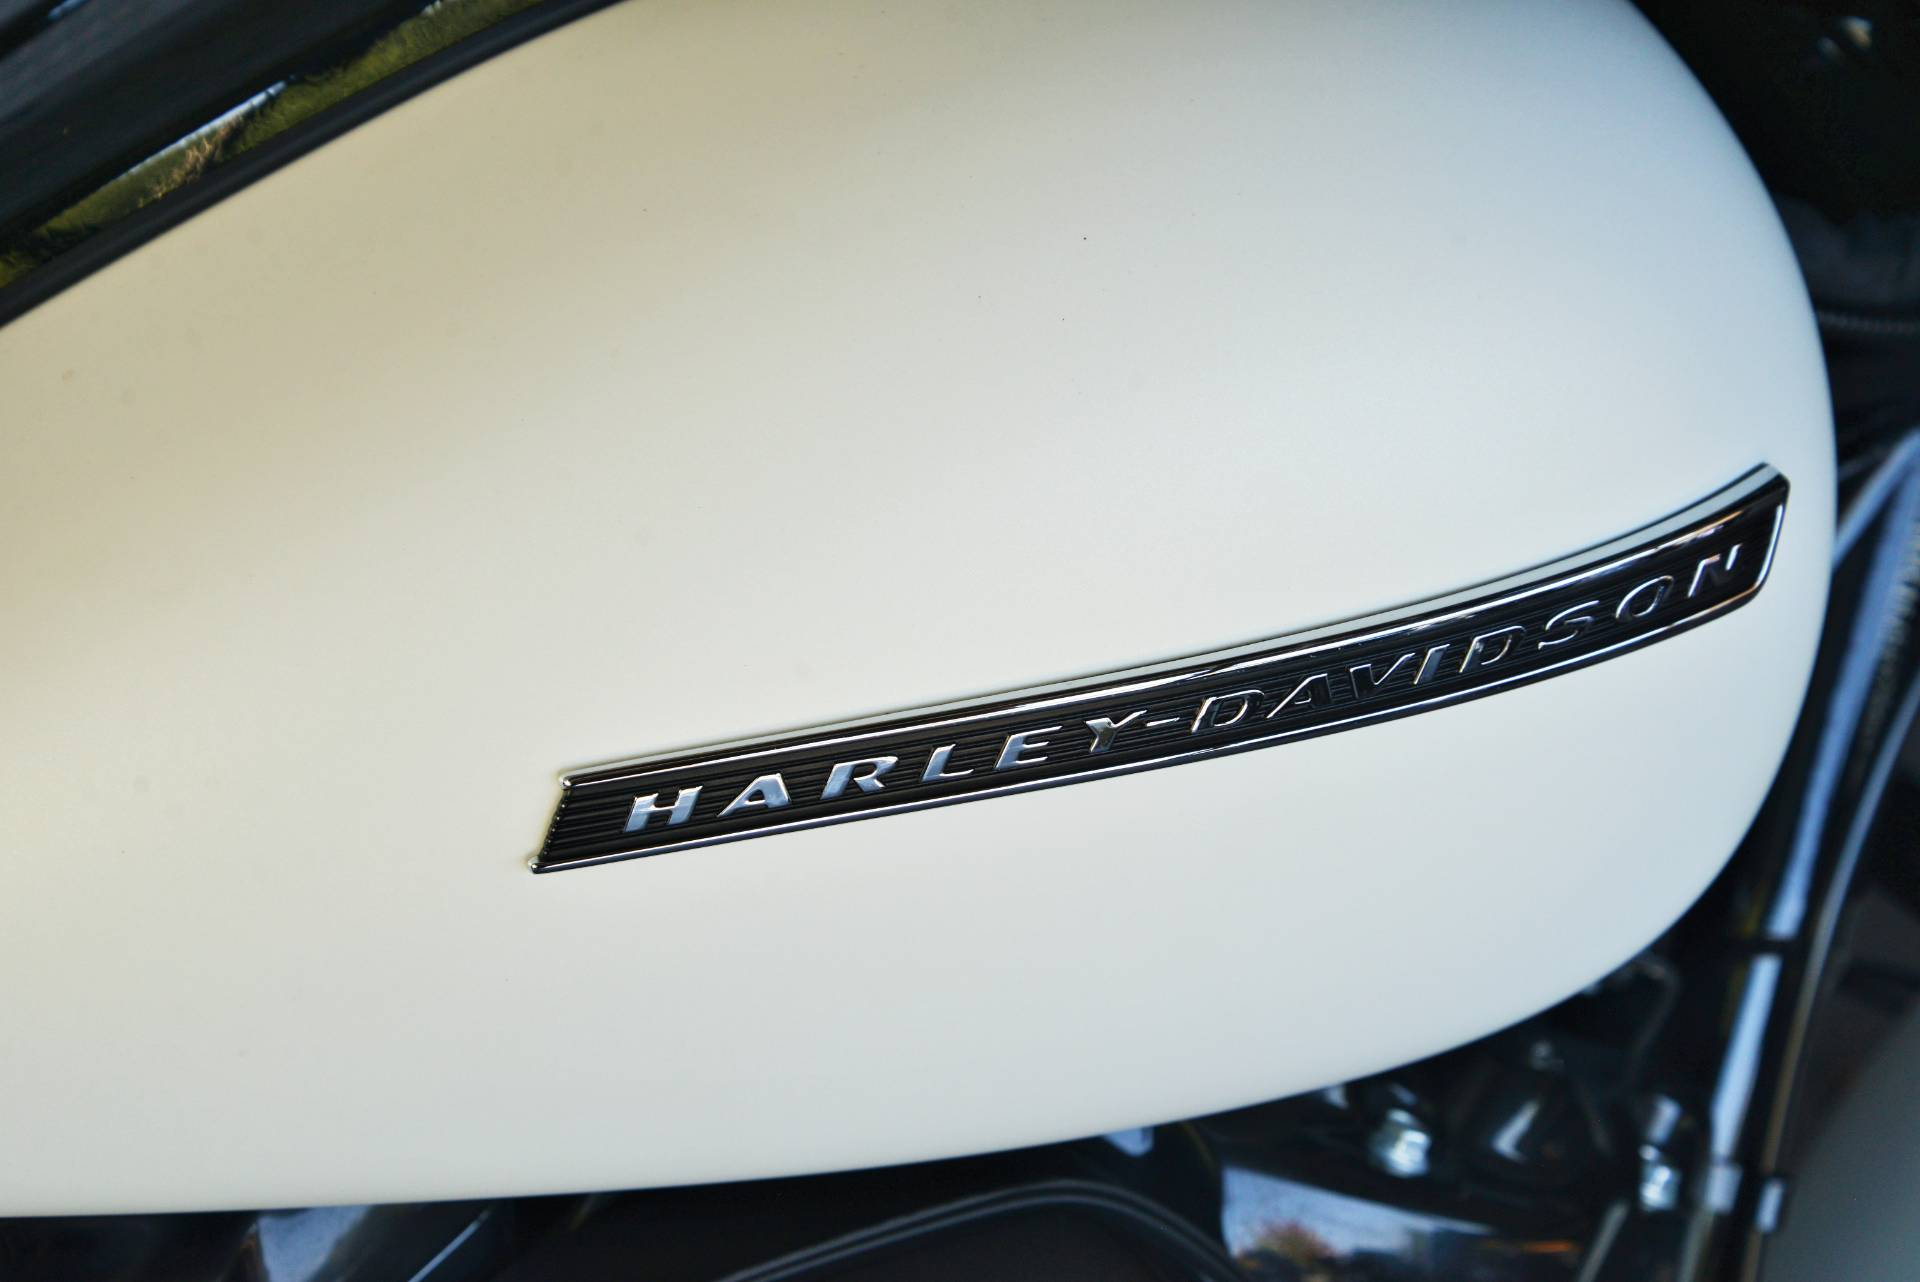 2018 Harley-Davidson STREET GLIDE SPECIAL in Lakewood, New Jersey - Photo 4